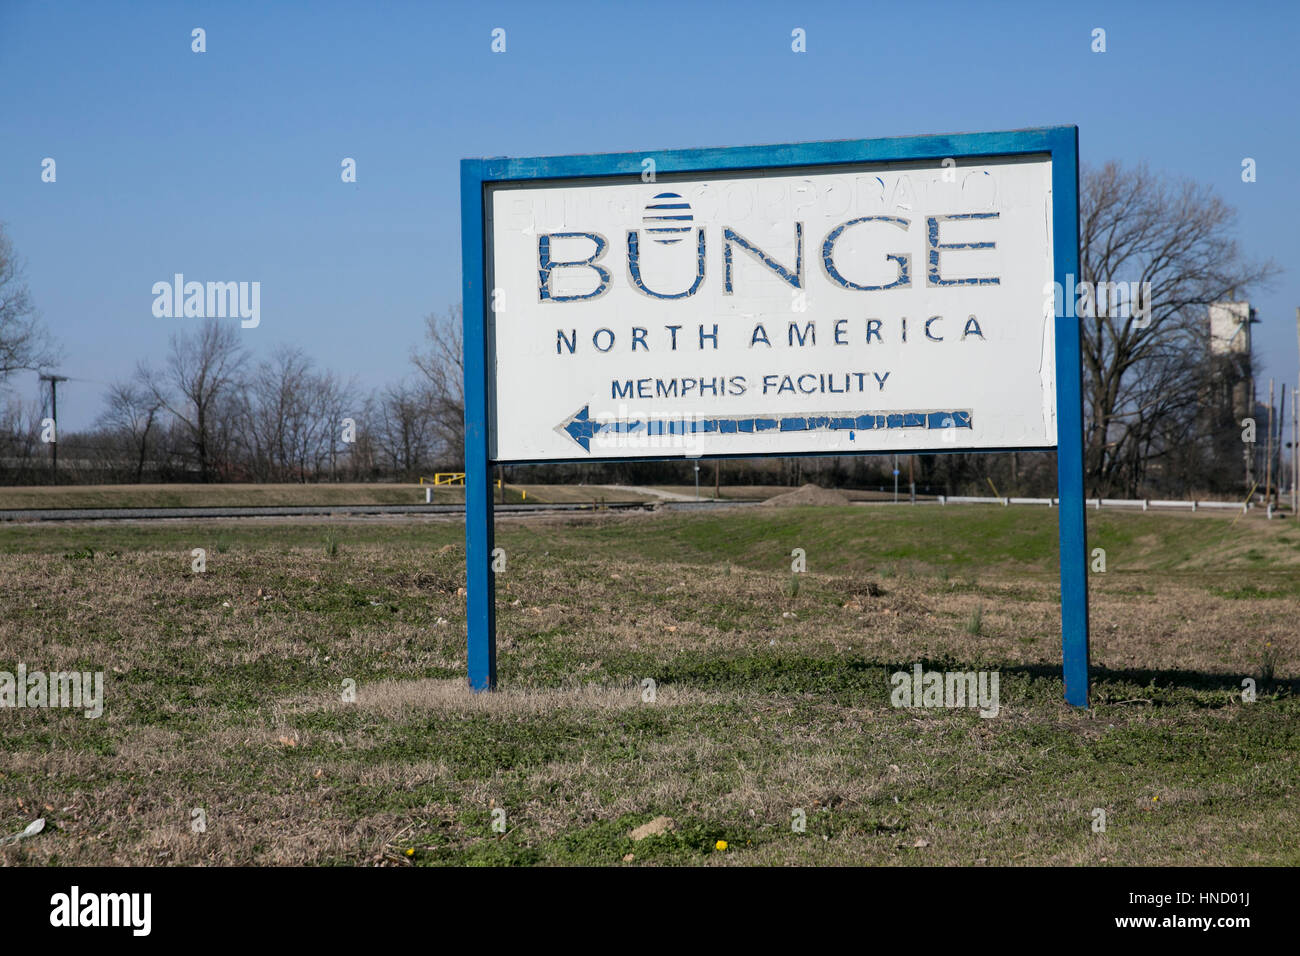 A logo sign outside of a facility occupied by Bunge Limited in Memphis, Tennessee on February 5, 2017. - Stock Image